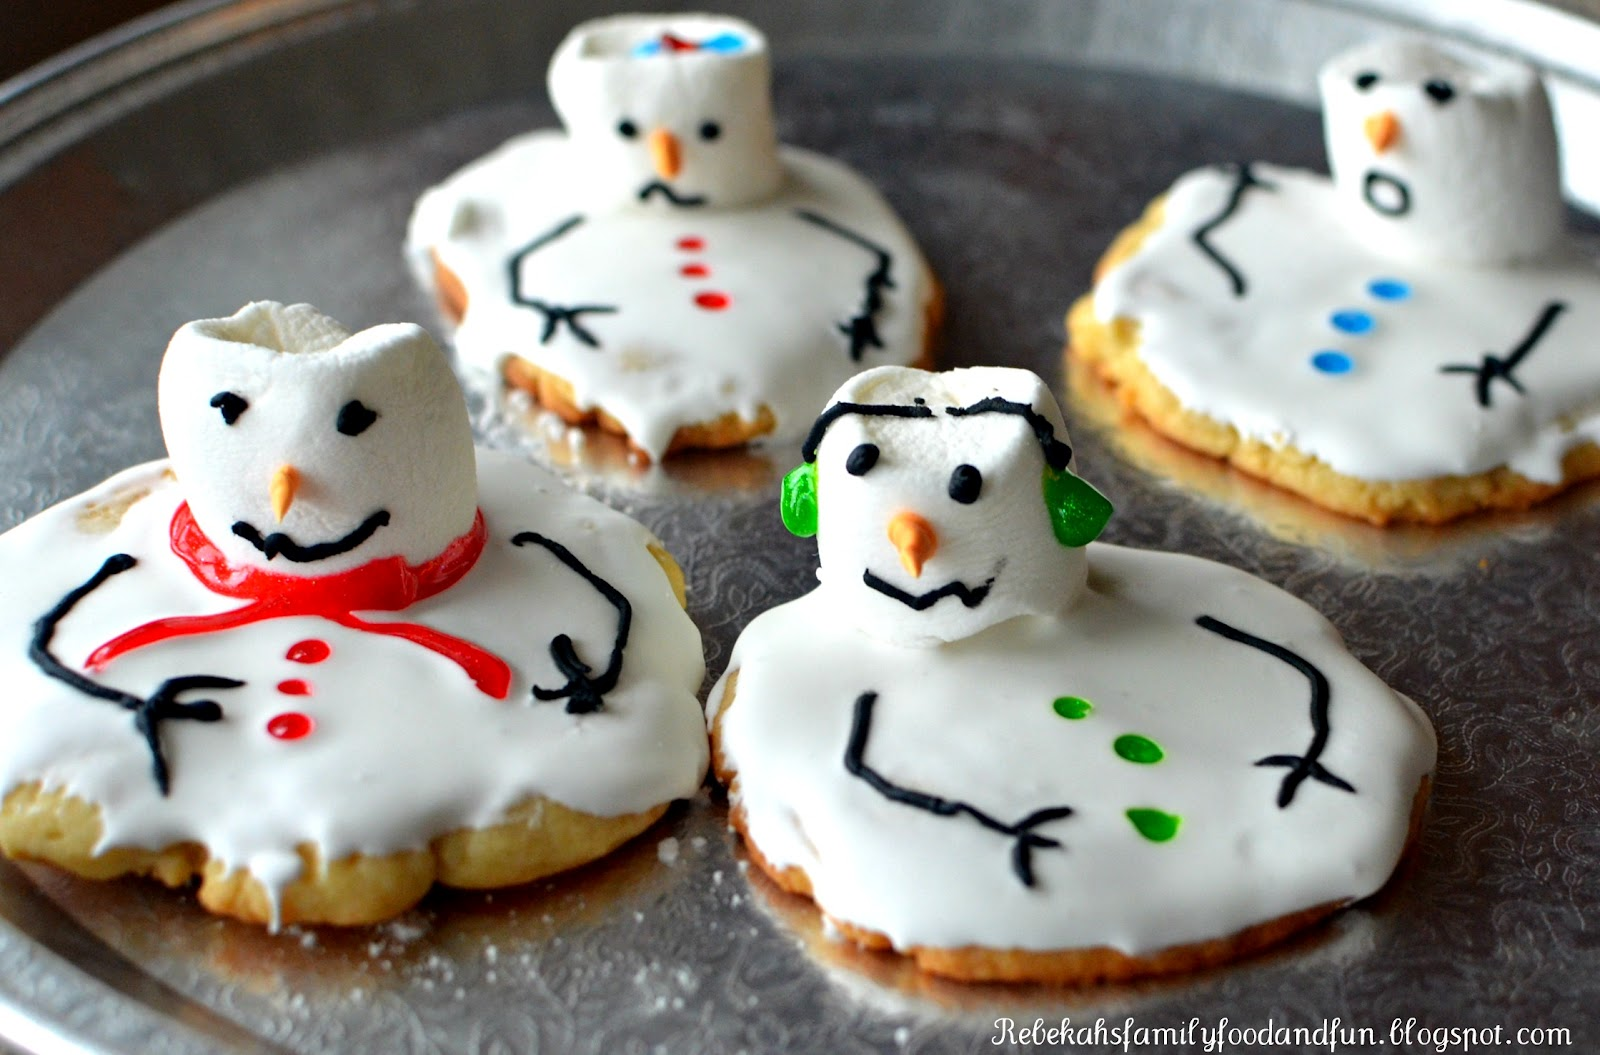 Family Food And Fun Melting Snowman Cookies